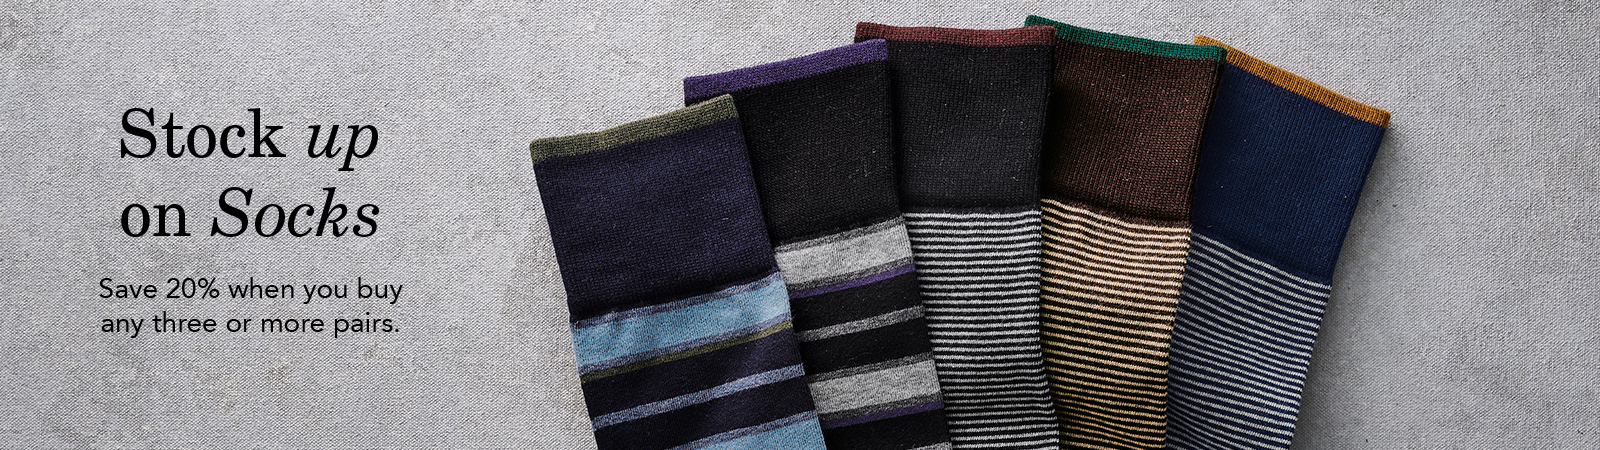 Stock Up on Socks. Save 20% when you buy three or more pairs.